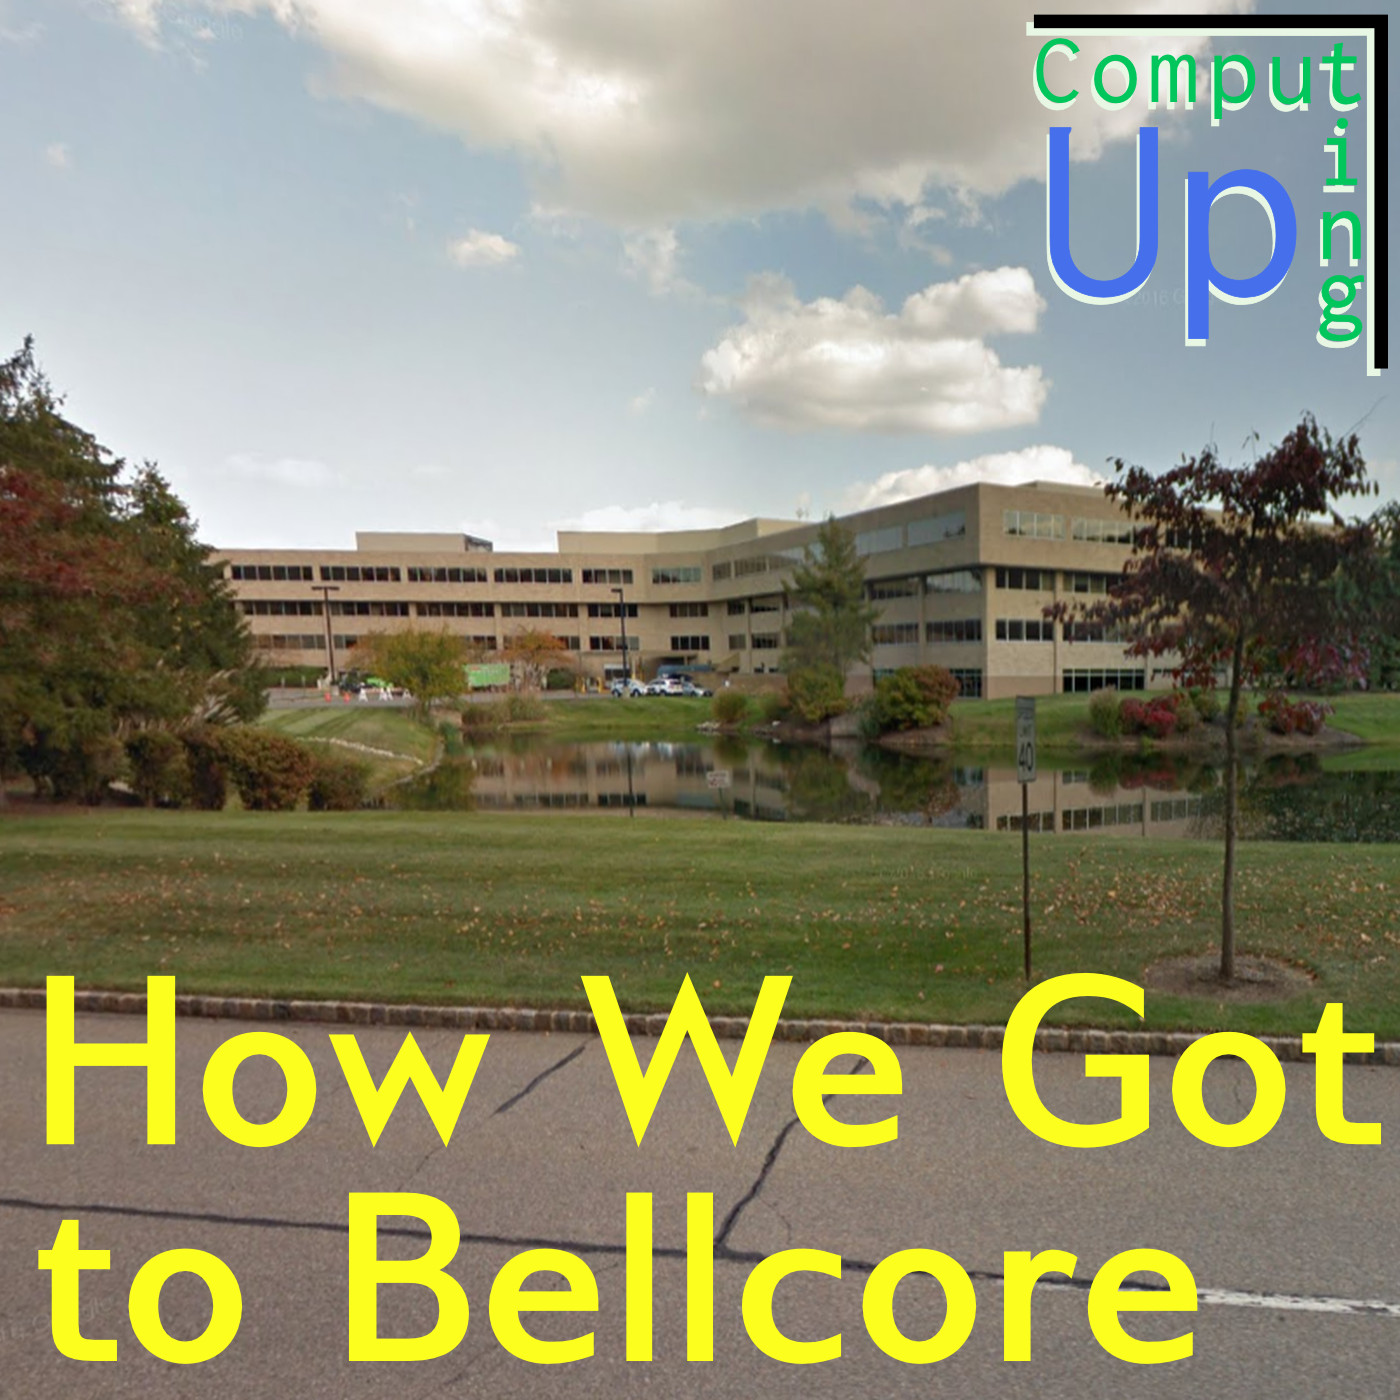 Artwork for How We Got to Bellcore - Computing Up First Conversation